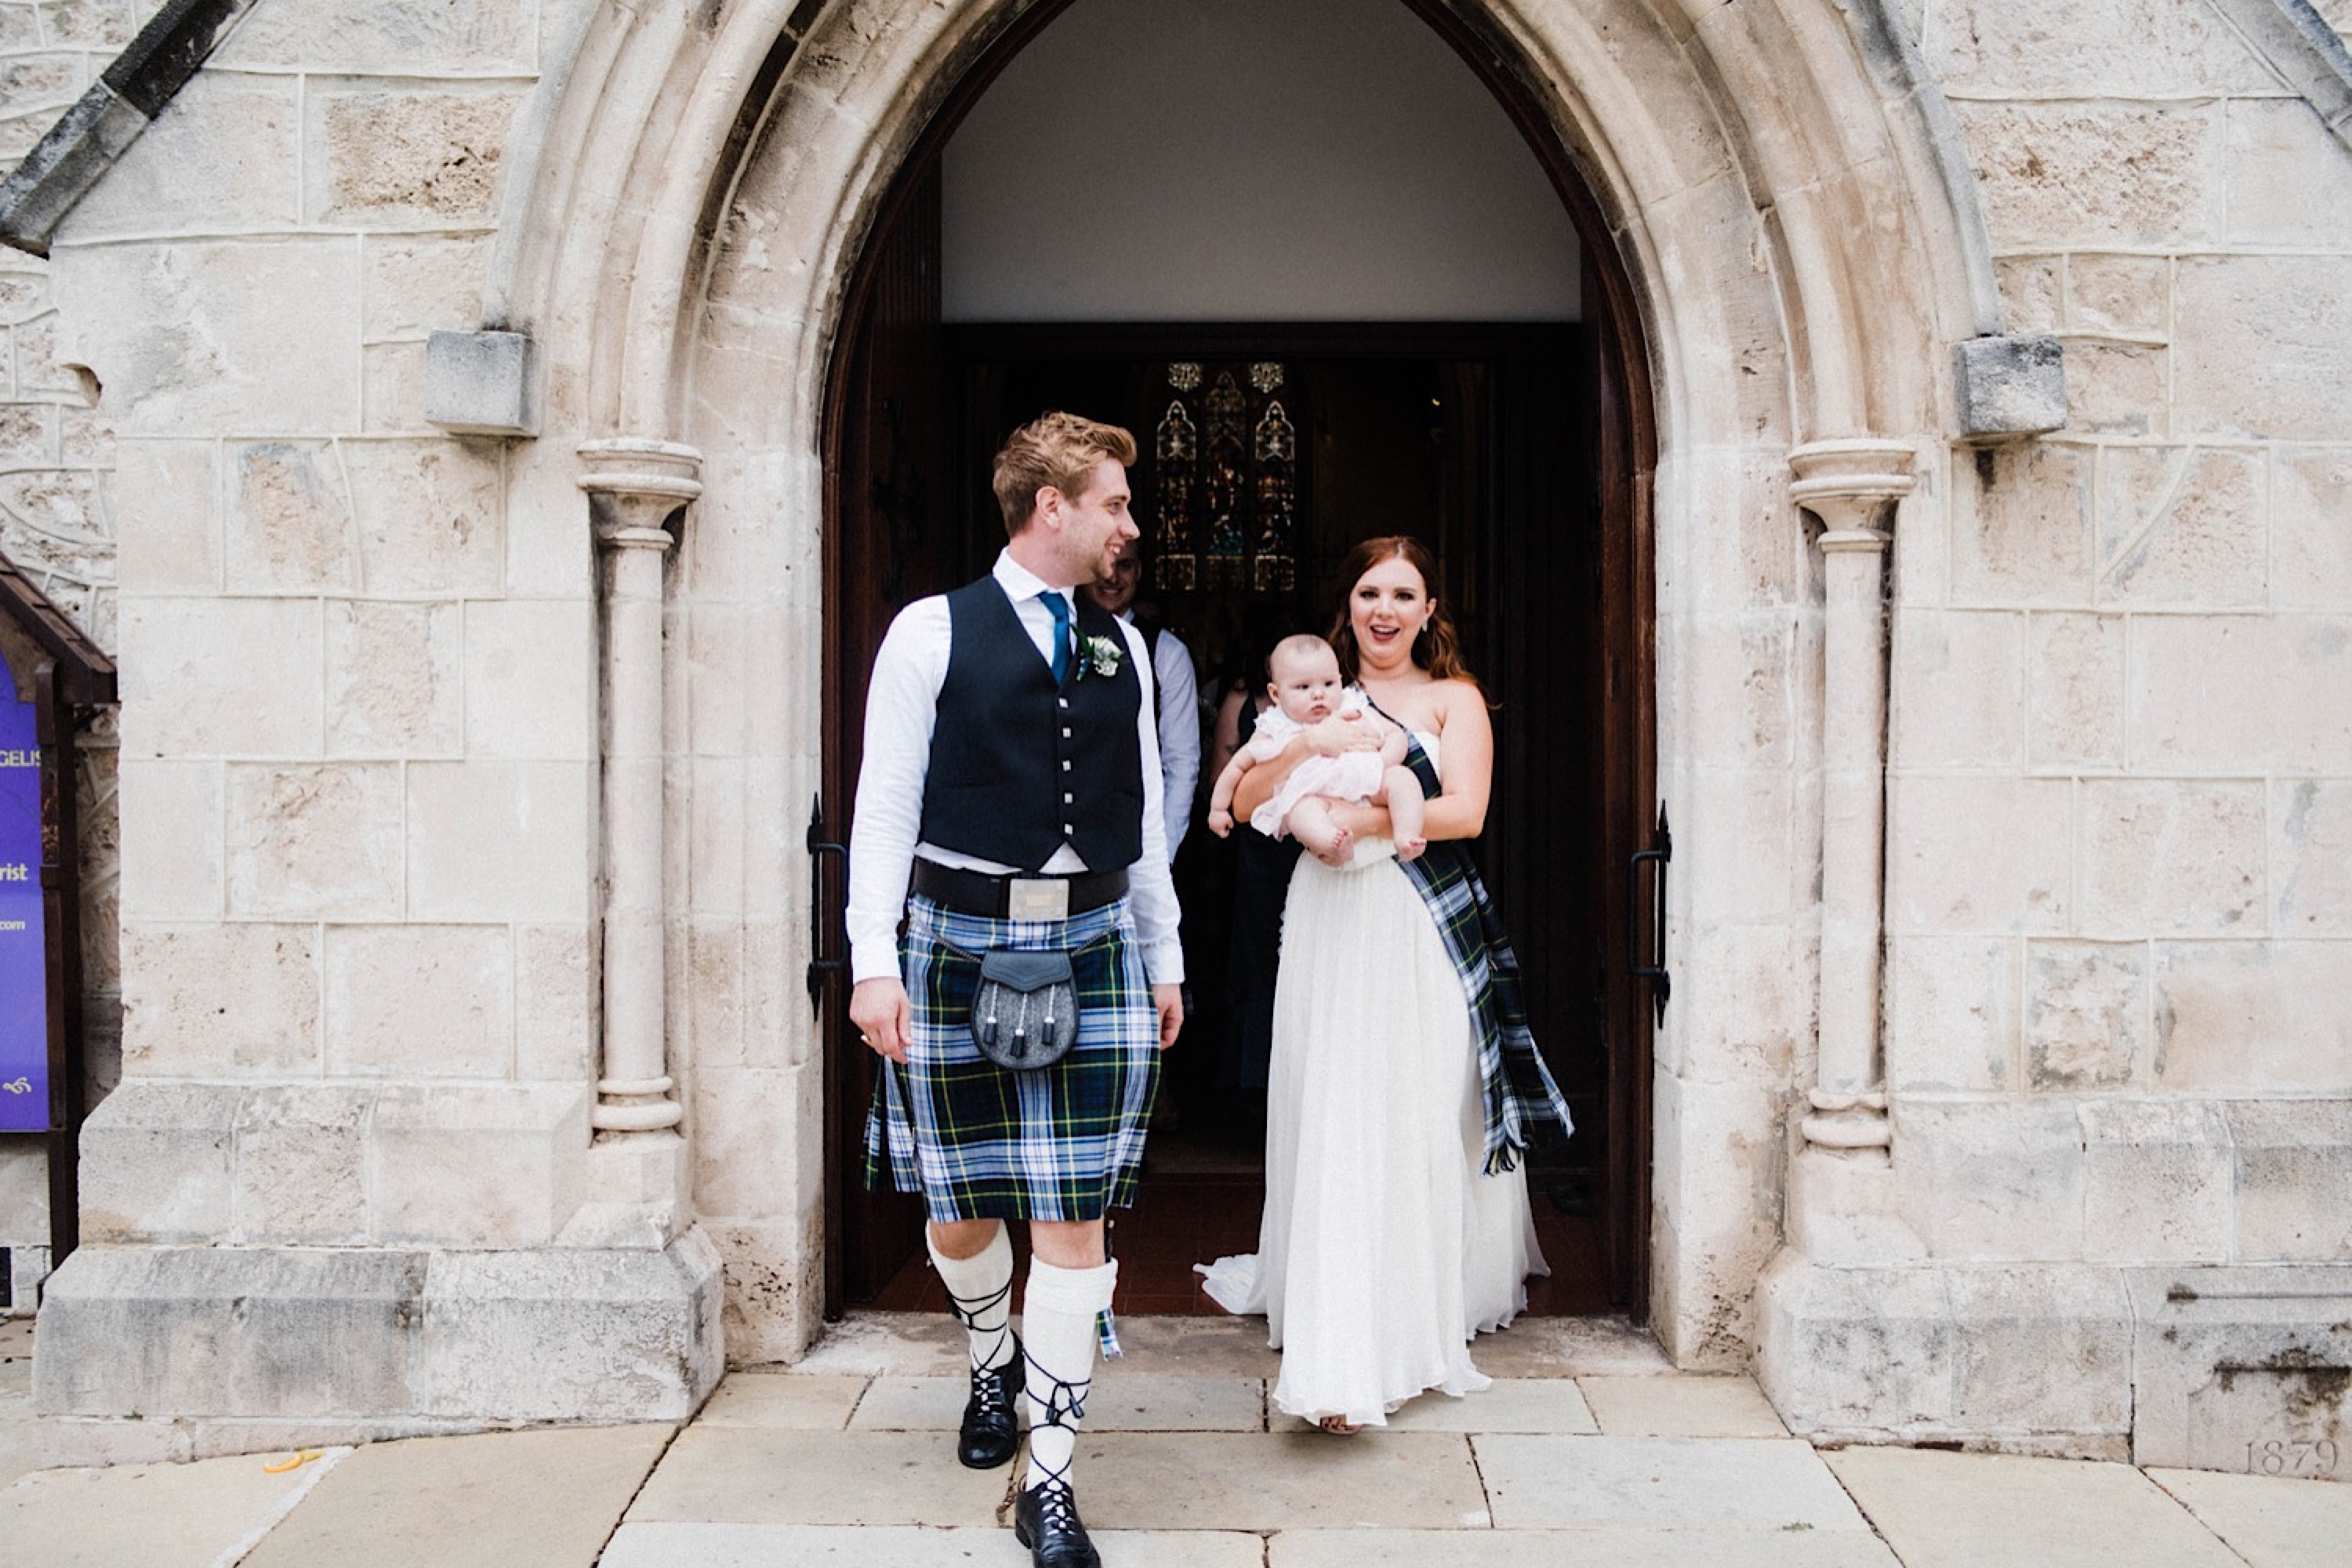 A candid portrait of the bride & groom walking out of St John's Anglican Church at the end of the wedding, as their bride hold's a friend's baby.